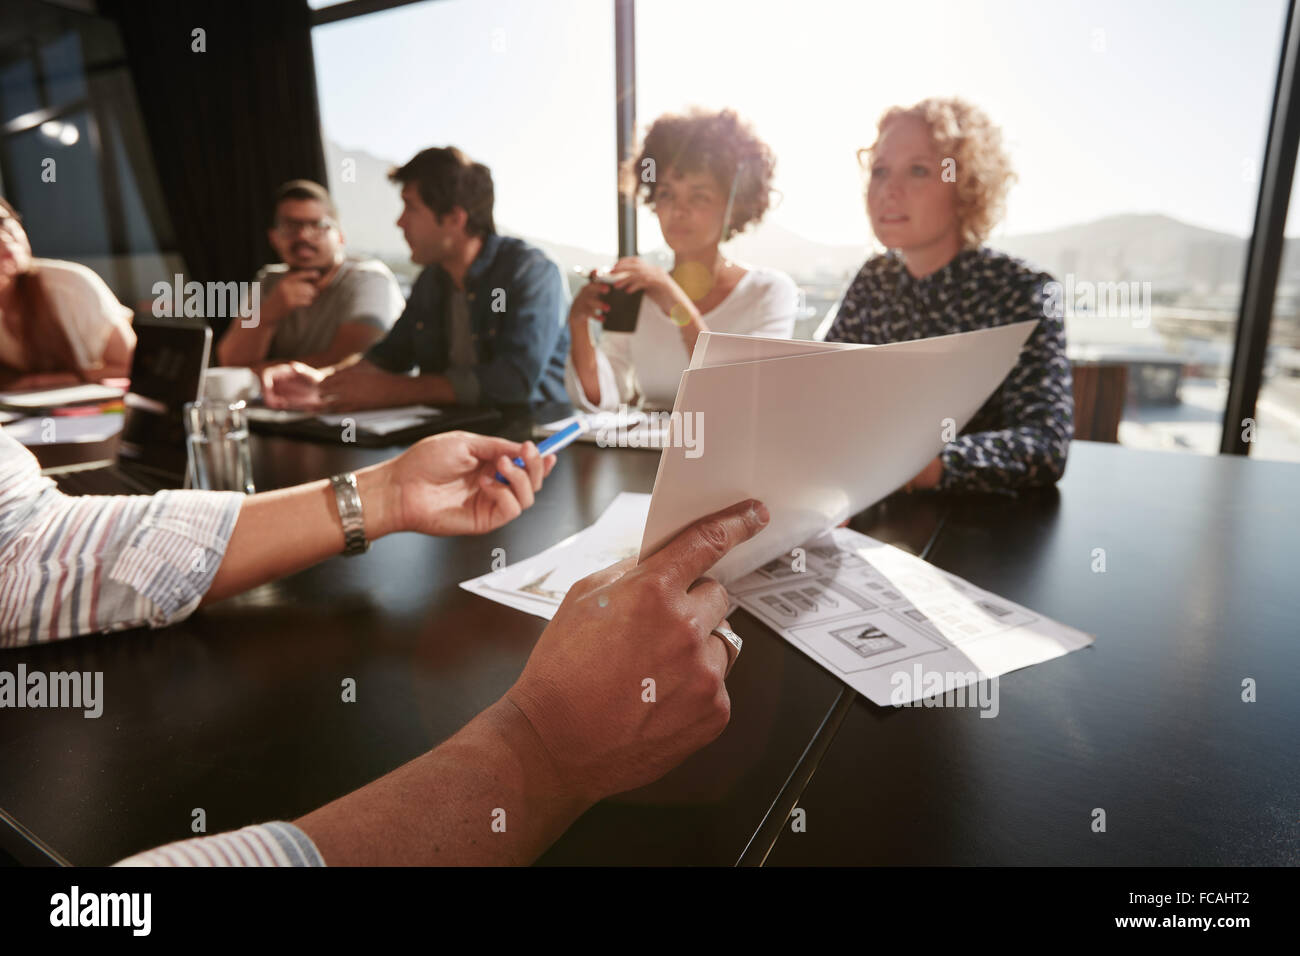 Papers in hands of young man explaining business plan to his creative team. Creative professionals meeting in office. - Stock Image